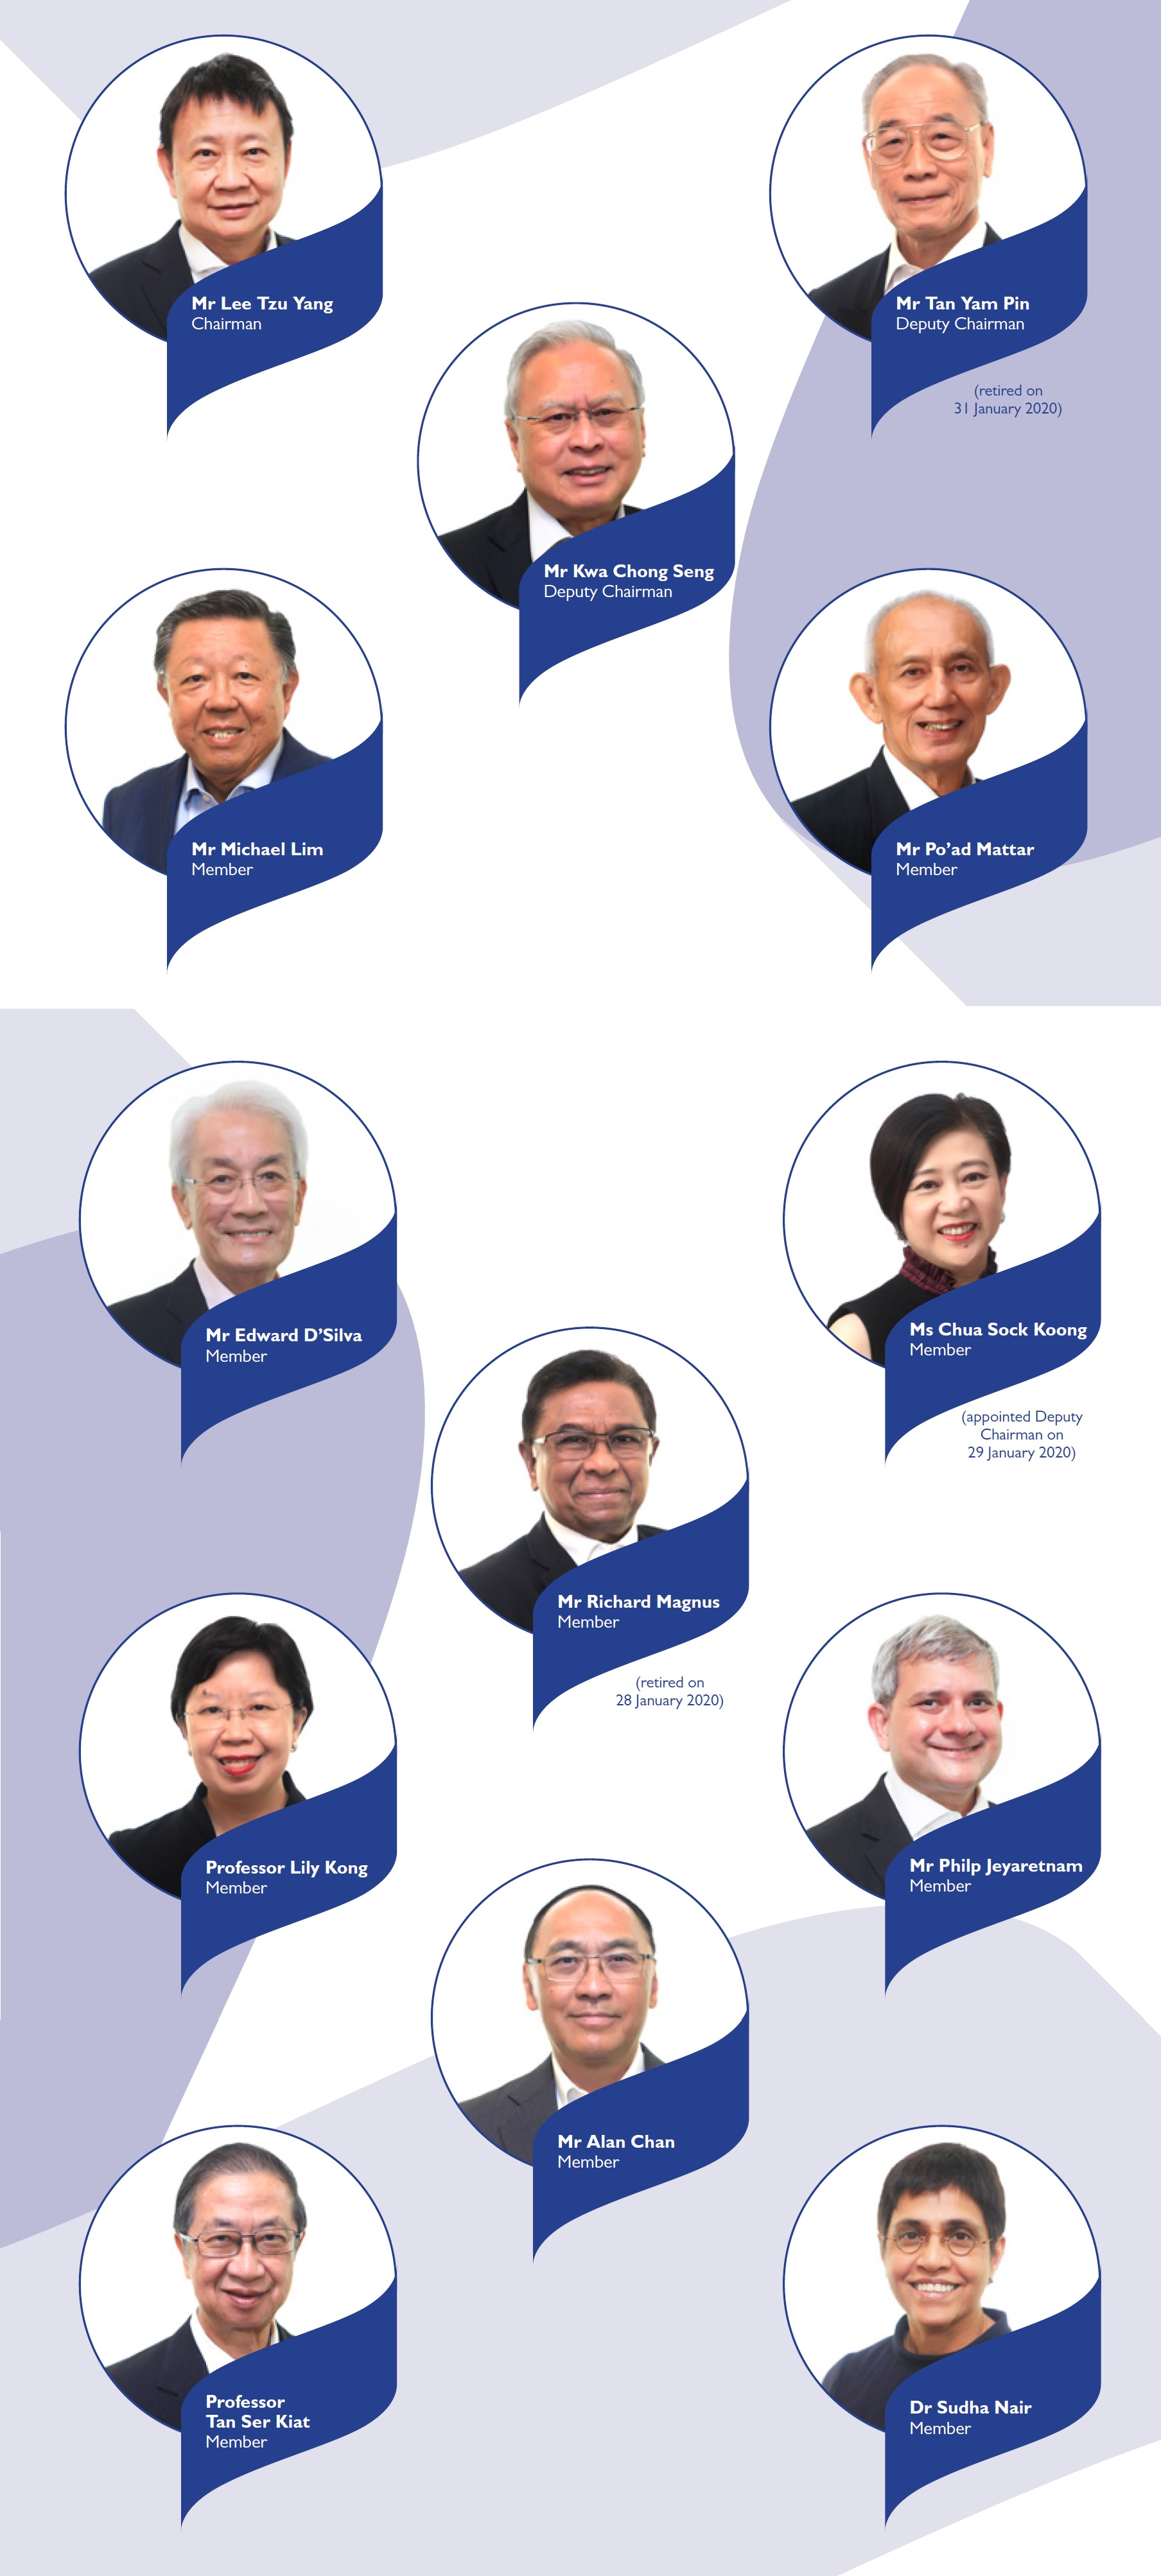 alt text - Members of the PSC